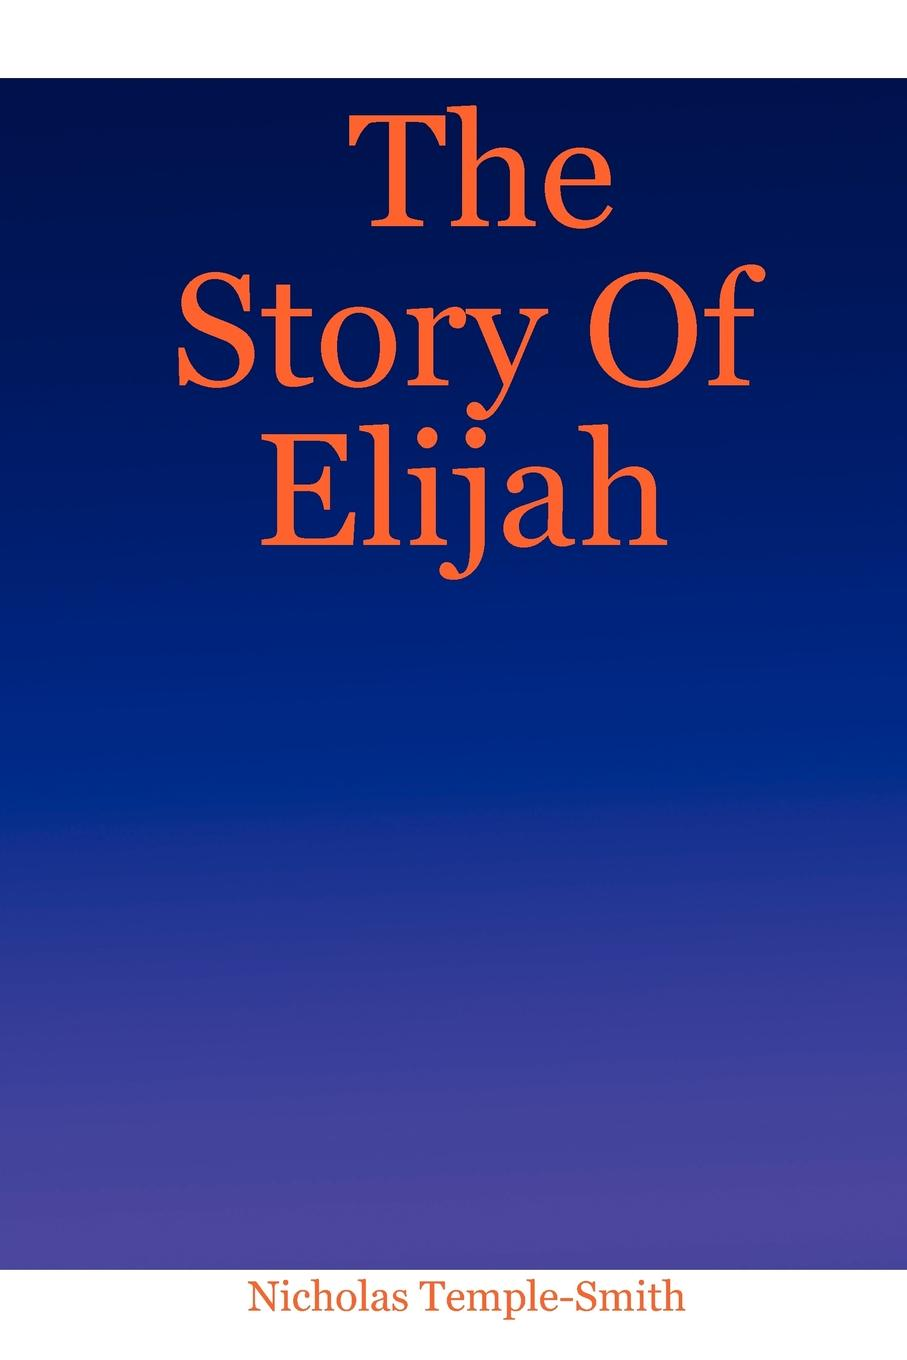 Nicholas Temple-Smith The Story of Elijah nasty brutish and long